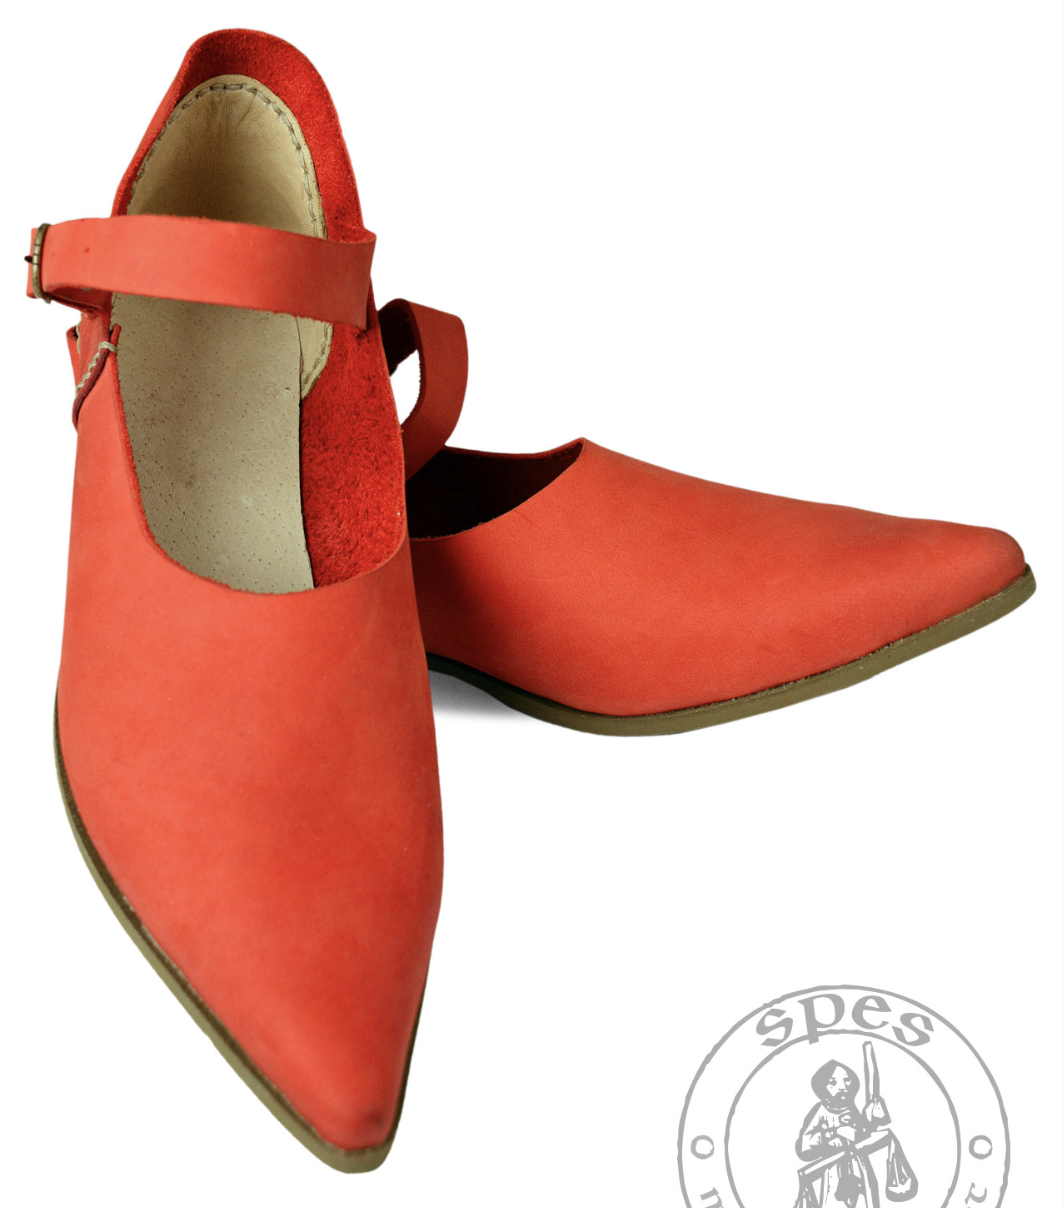 Chaussures Dame : KSS1403 - 120 €